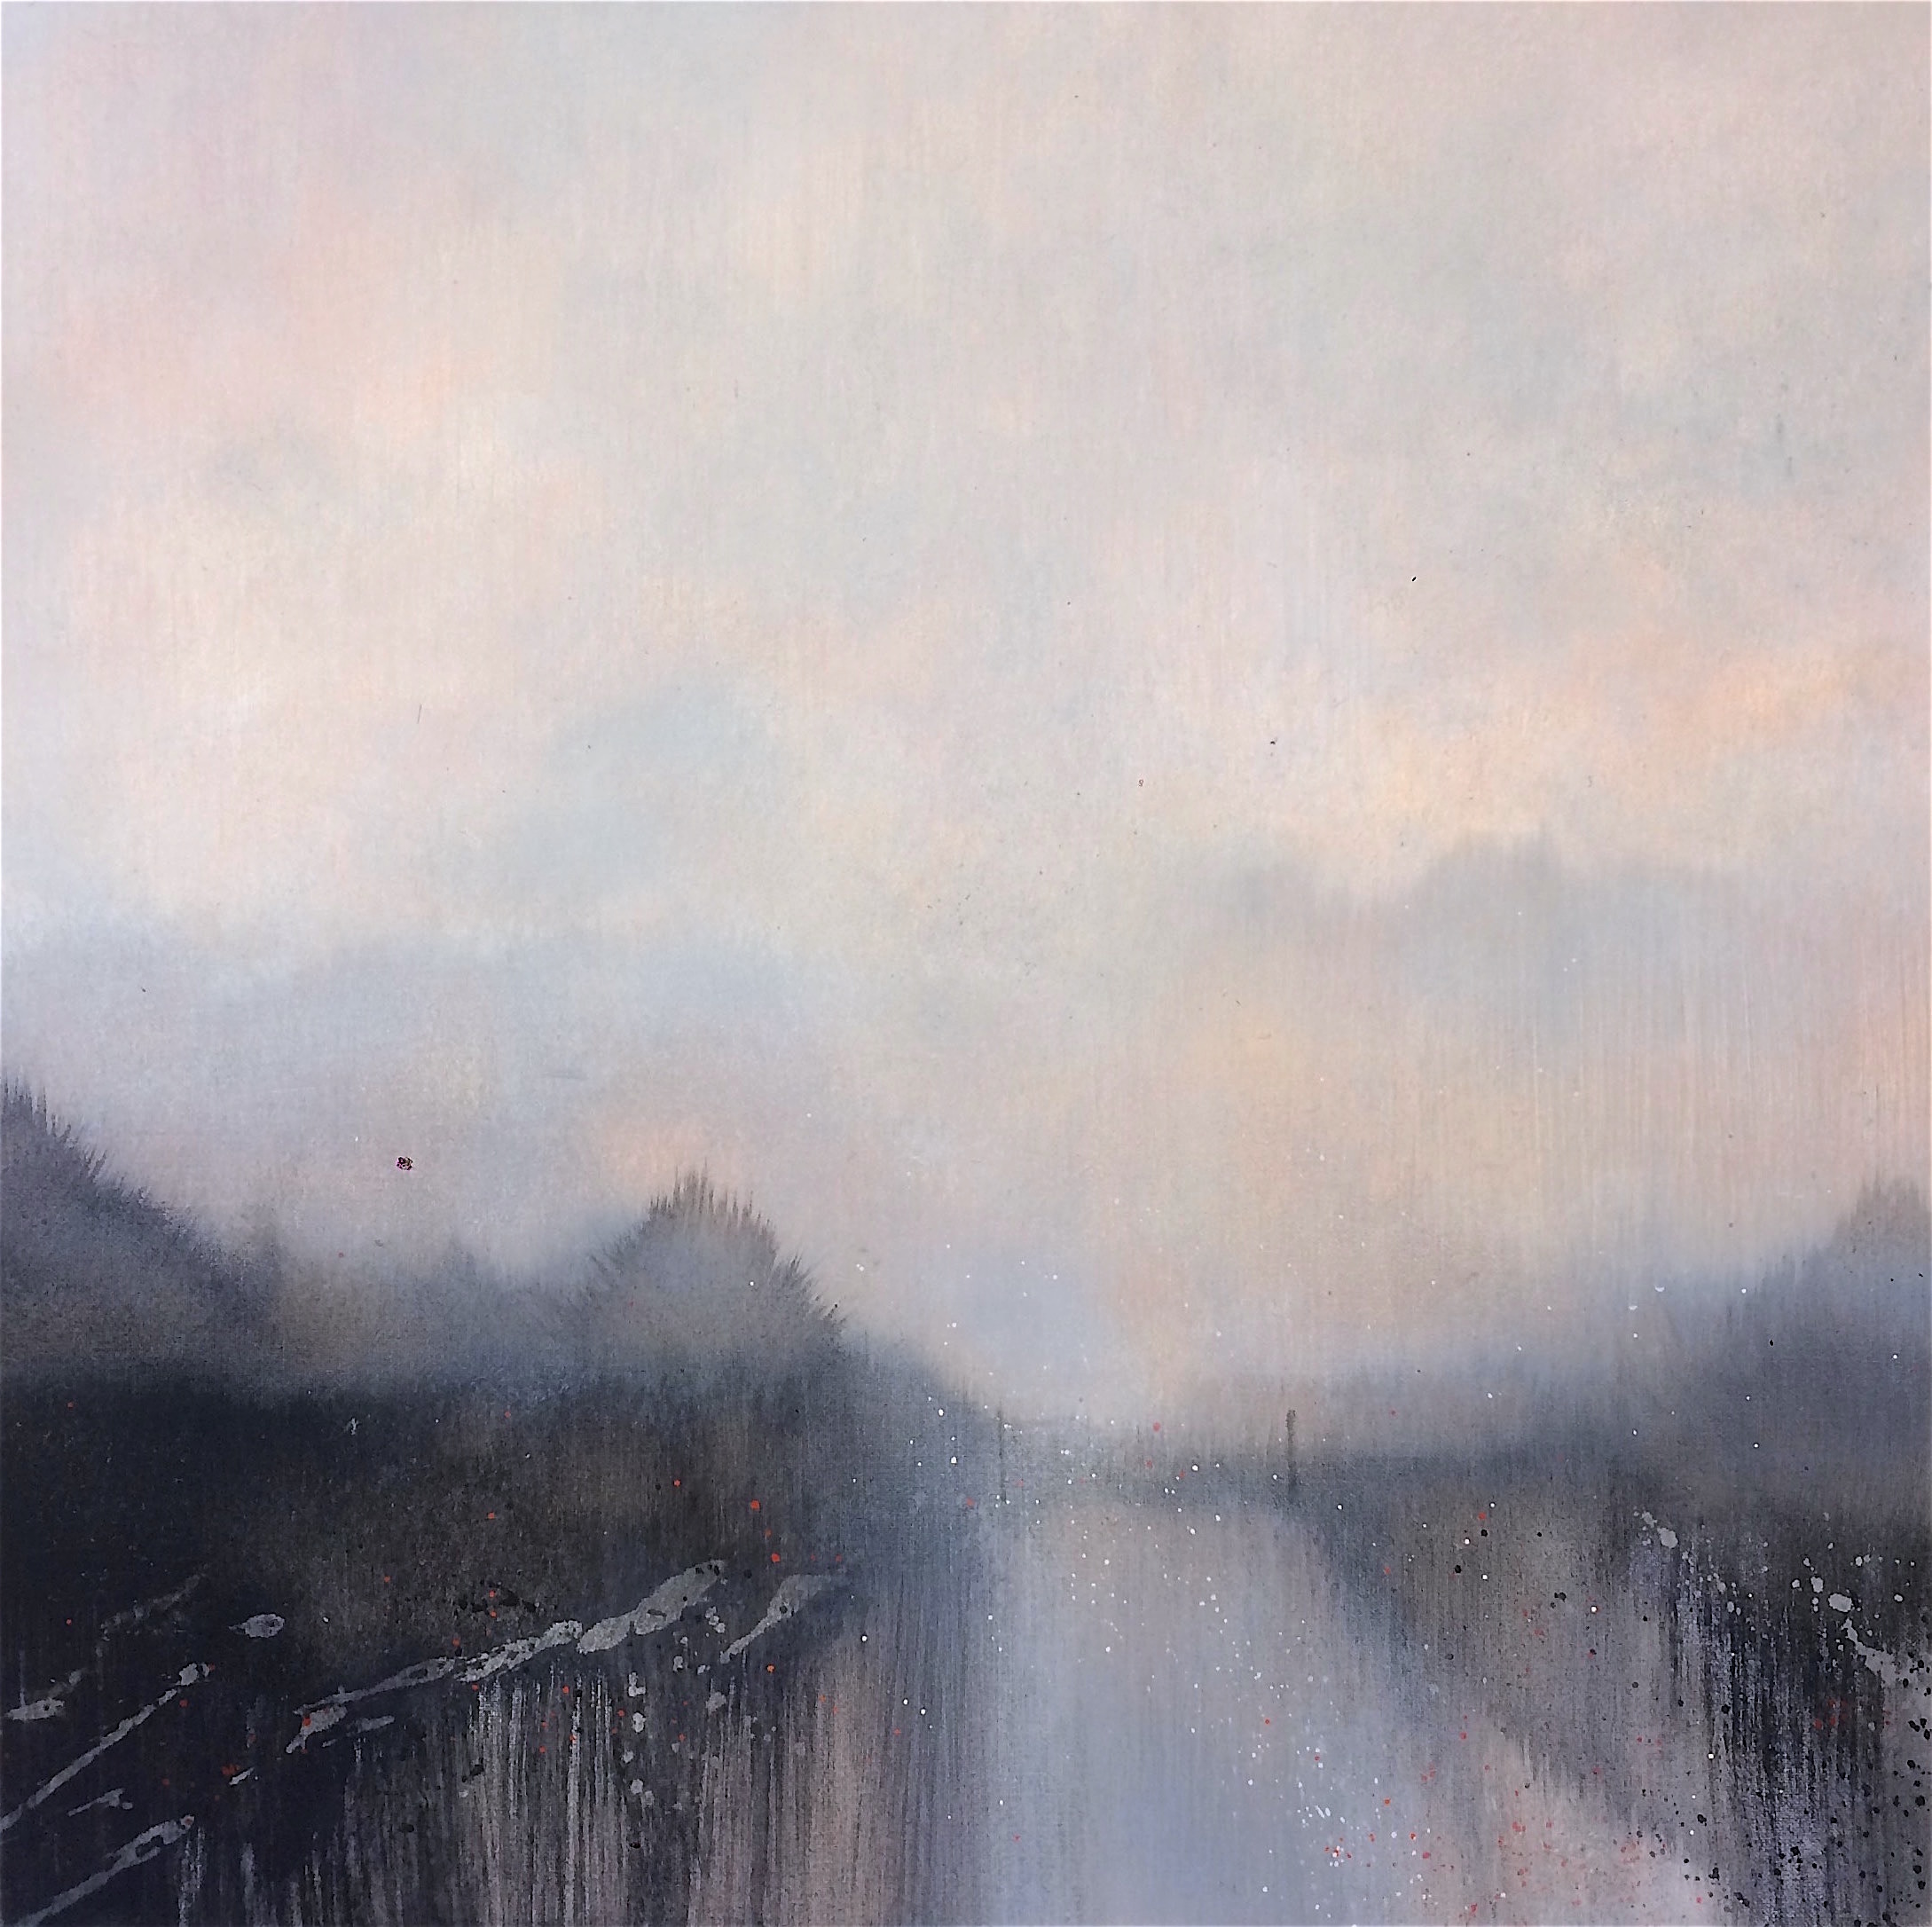 Copy of The Silent Mist 50x50cm